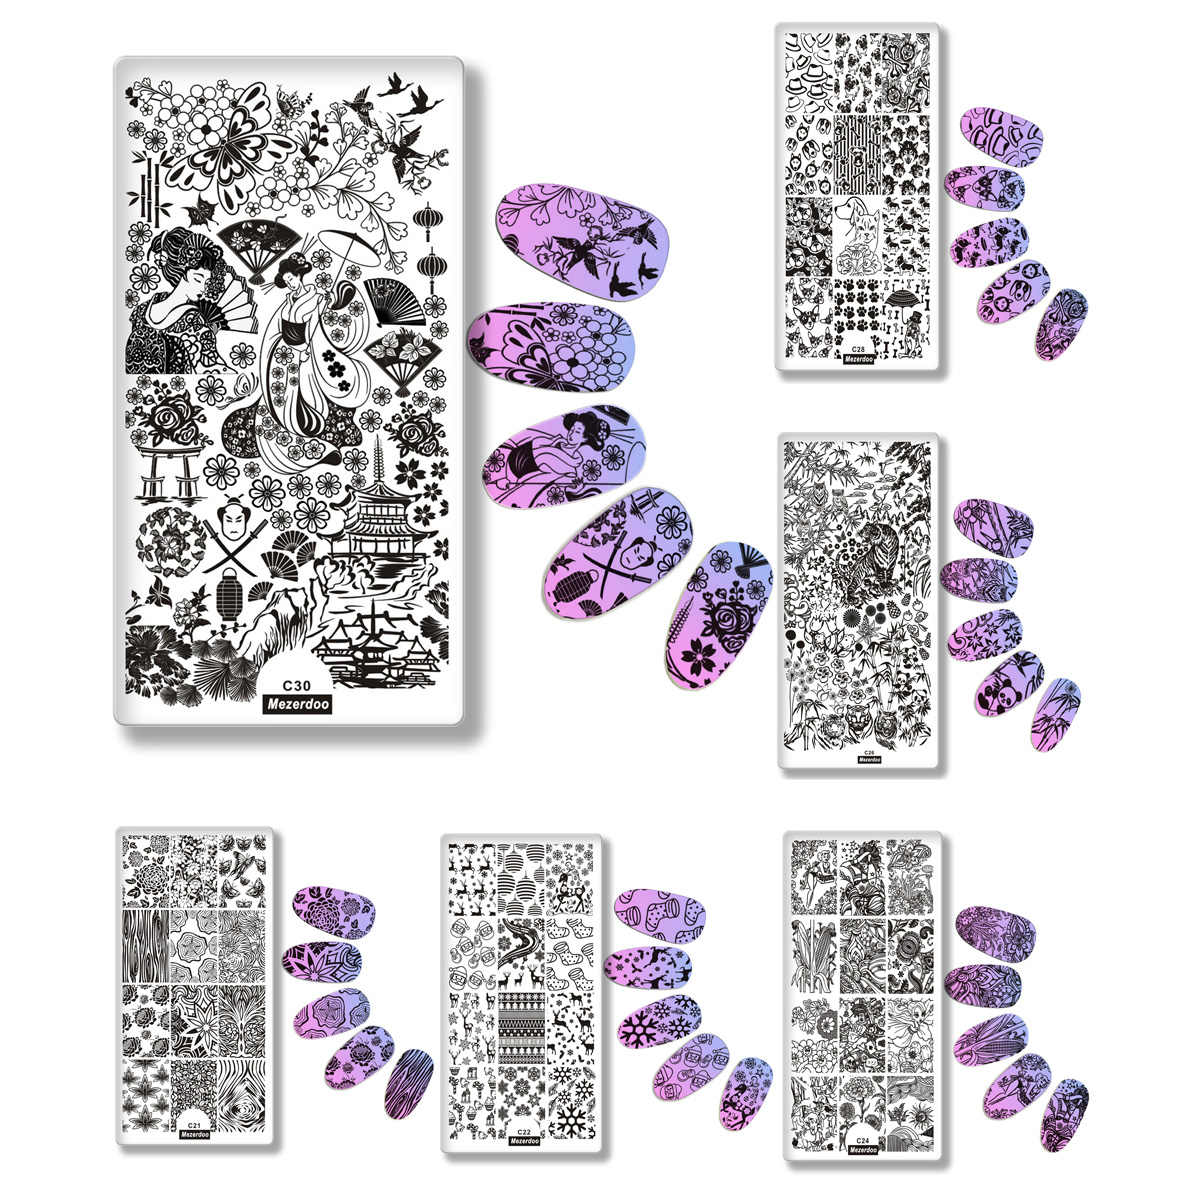 Mezerdoo Animal Plants Fruits Nail Stamping Plate Nail Art Stamping Image Plate Cute Dogs Hippocampus Design Nail Stamp Template